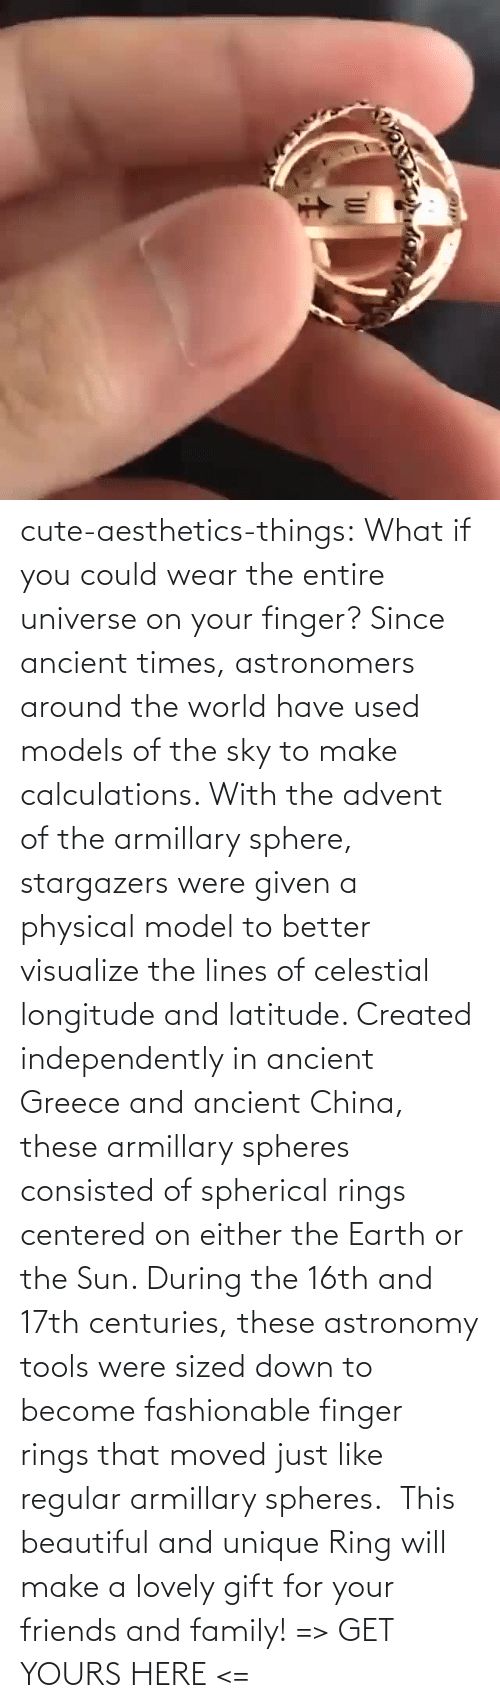 Friends And Family: cute-aesthetics-things: What if you could wear the entire universe on your finger? Since ancient times, astronomers around the world have used models of the sky to make calculations. With the advent of the armillary sphere, stargazers were given a physical model to better visualize the lines of celestial longitude and latitude. Created independently in ancient Greece and ancient China, these armillary spheres consisted of spherical rings centered on either the Earth or the Sun. During the 16th and 17th centuries, these astronomy tools were sized down to become fashionable finger rings that moved just like regular armillary spheres.  This beautiful and unique Ring will make a lovely gift for your friends and family! => GET YOURS HERE <=